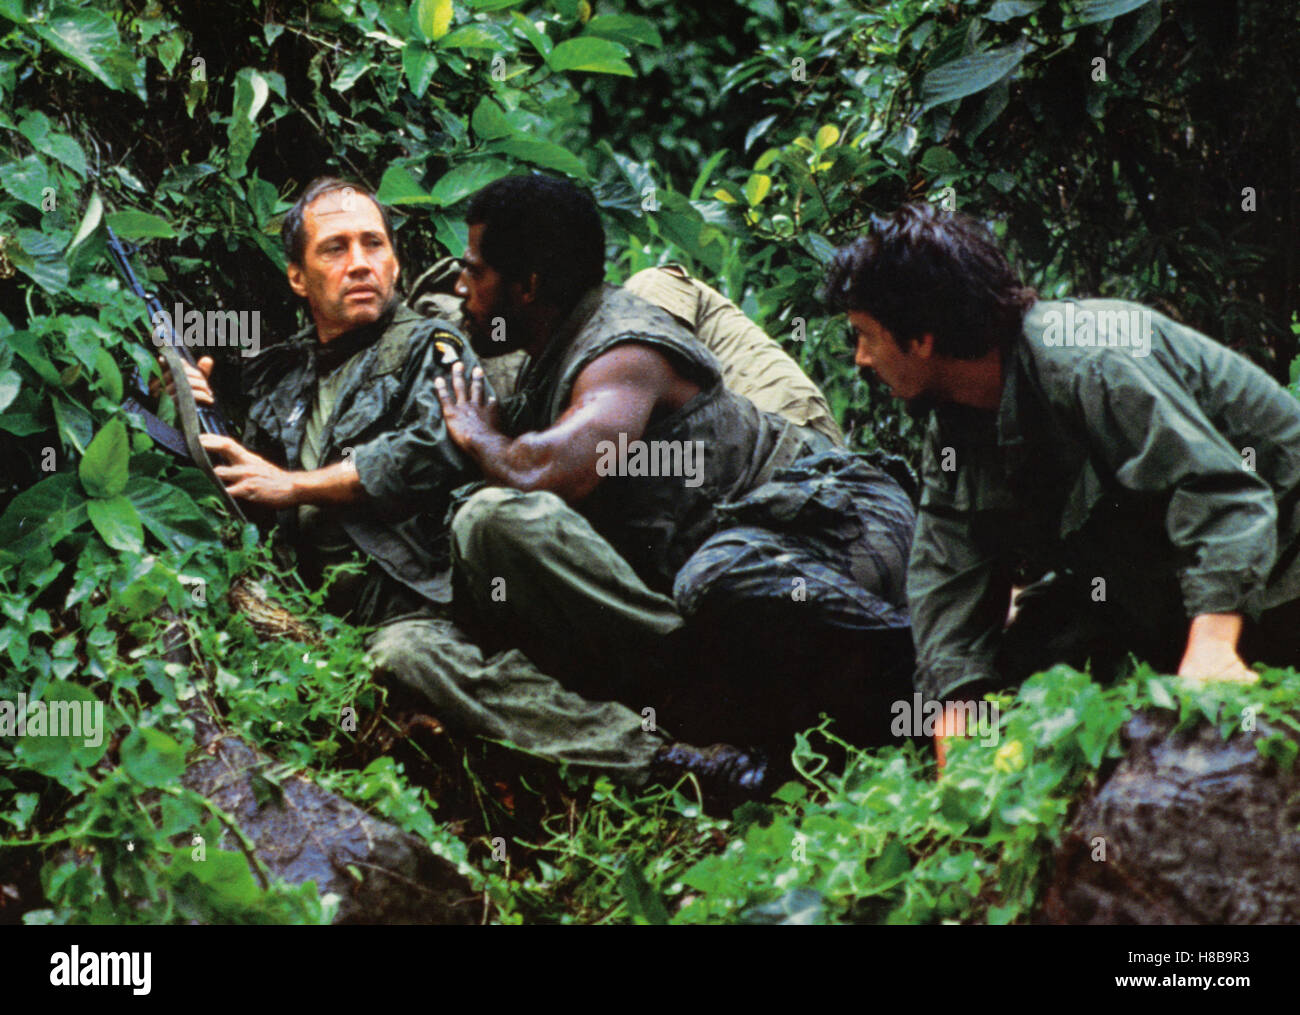 P.O.W. - Die Vergeltung, (BEHIND ENEMY LINES / P.O.W. - THE ESCAPE) USA 1986, Regie: Gideon Amir, DAVID CARRADINE, - Stock Image